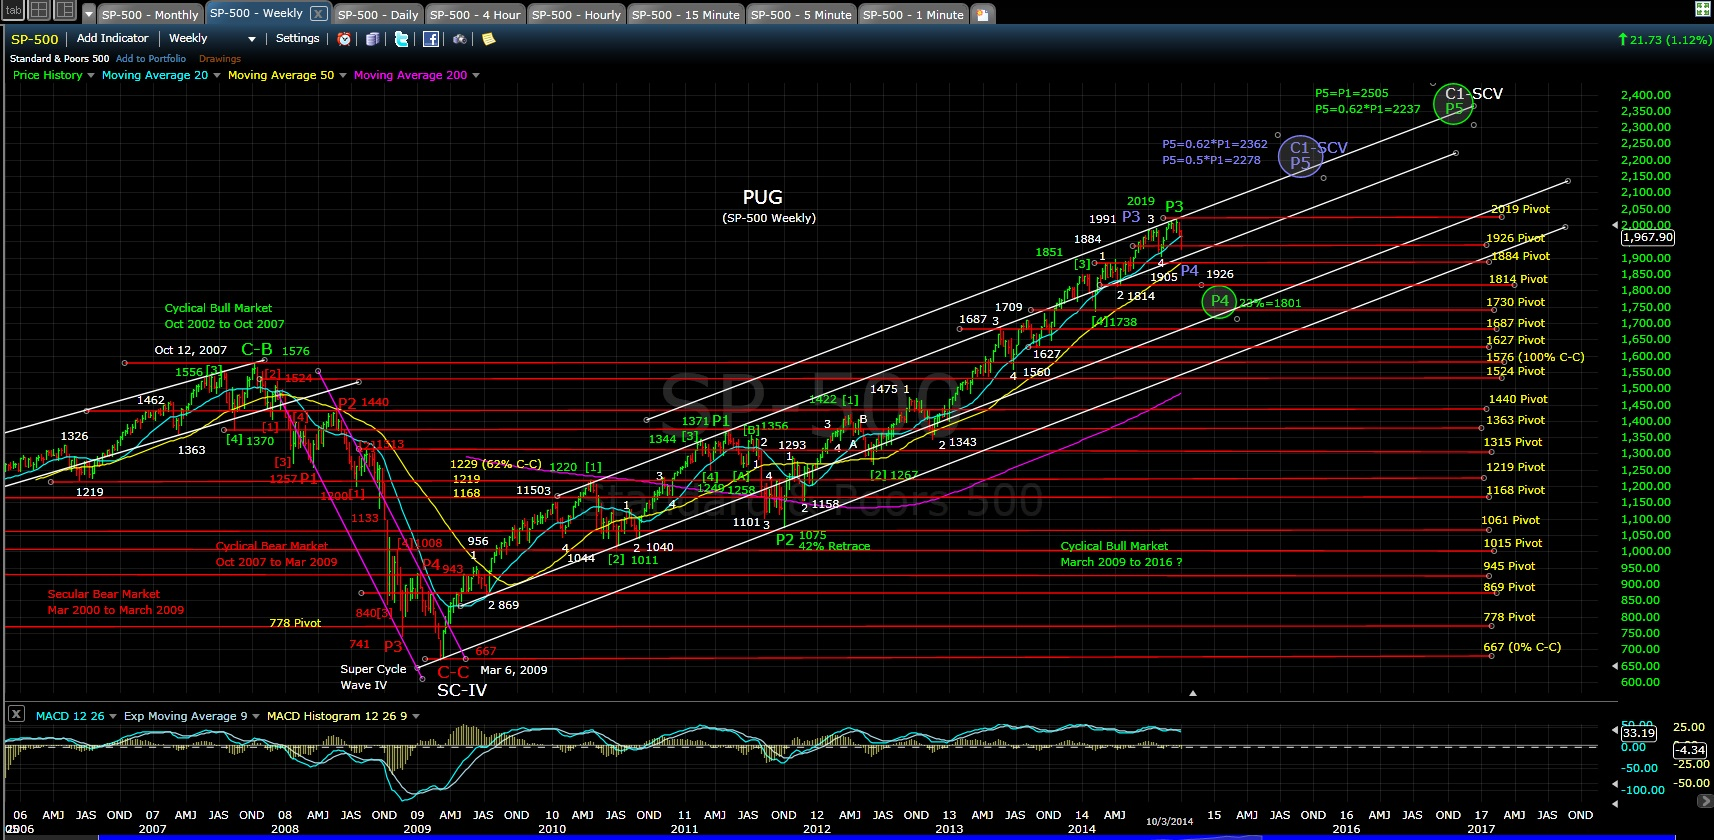 SP-500 weekly chart EOD 10-3-14